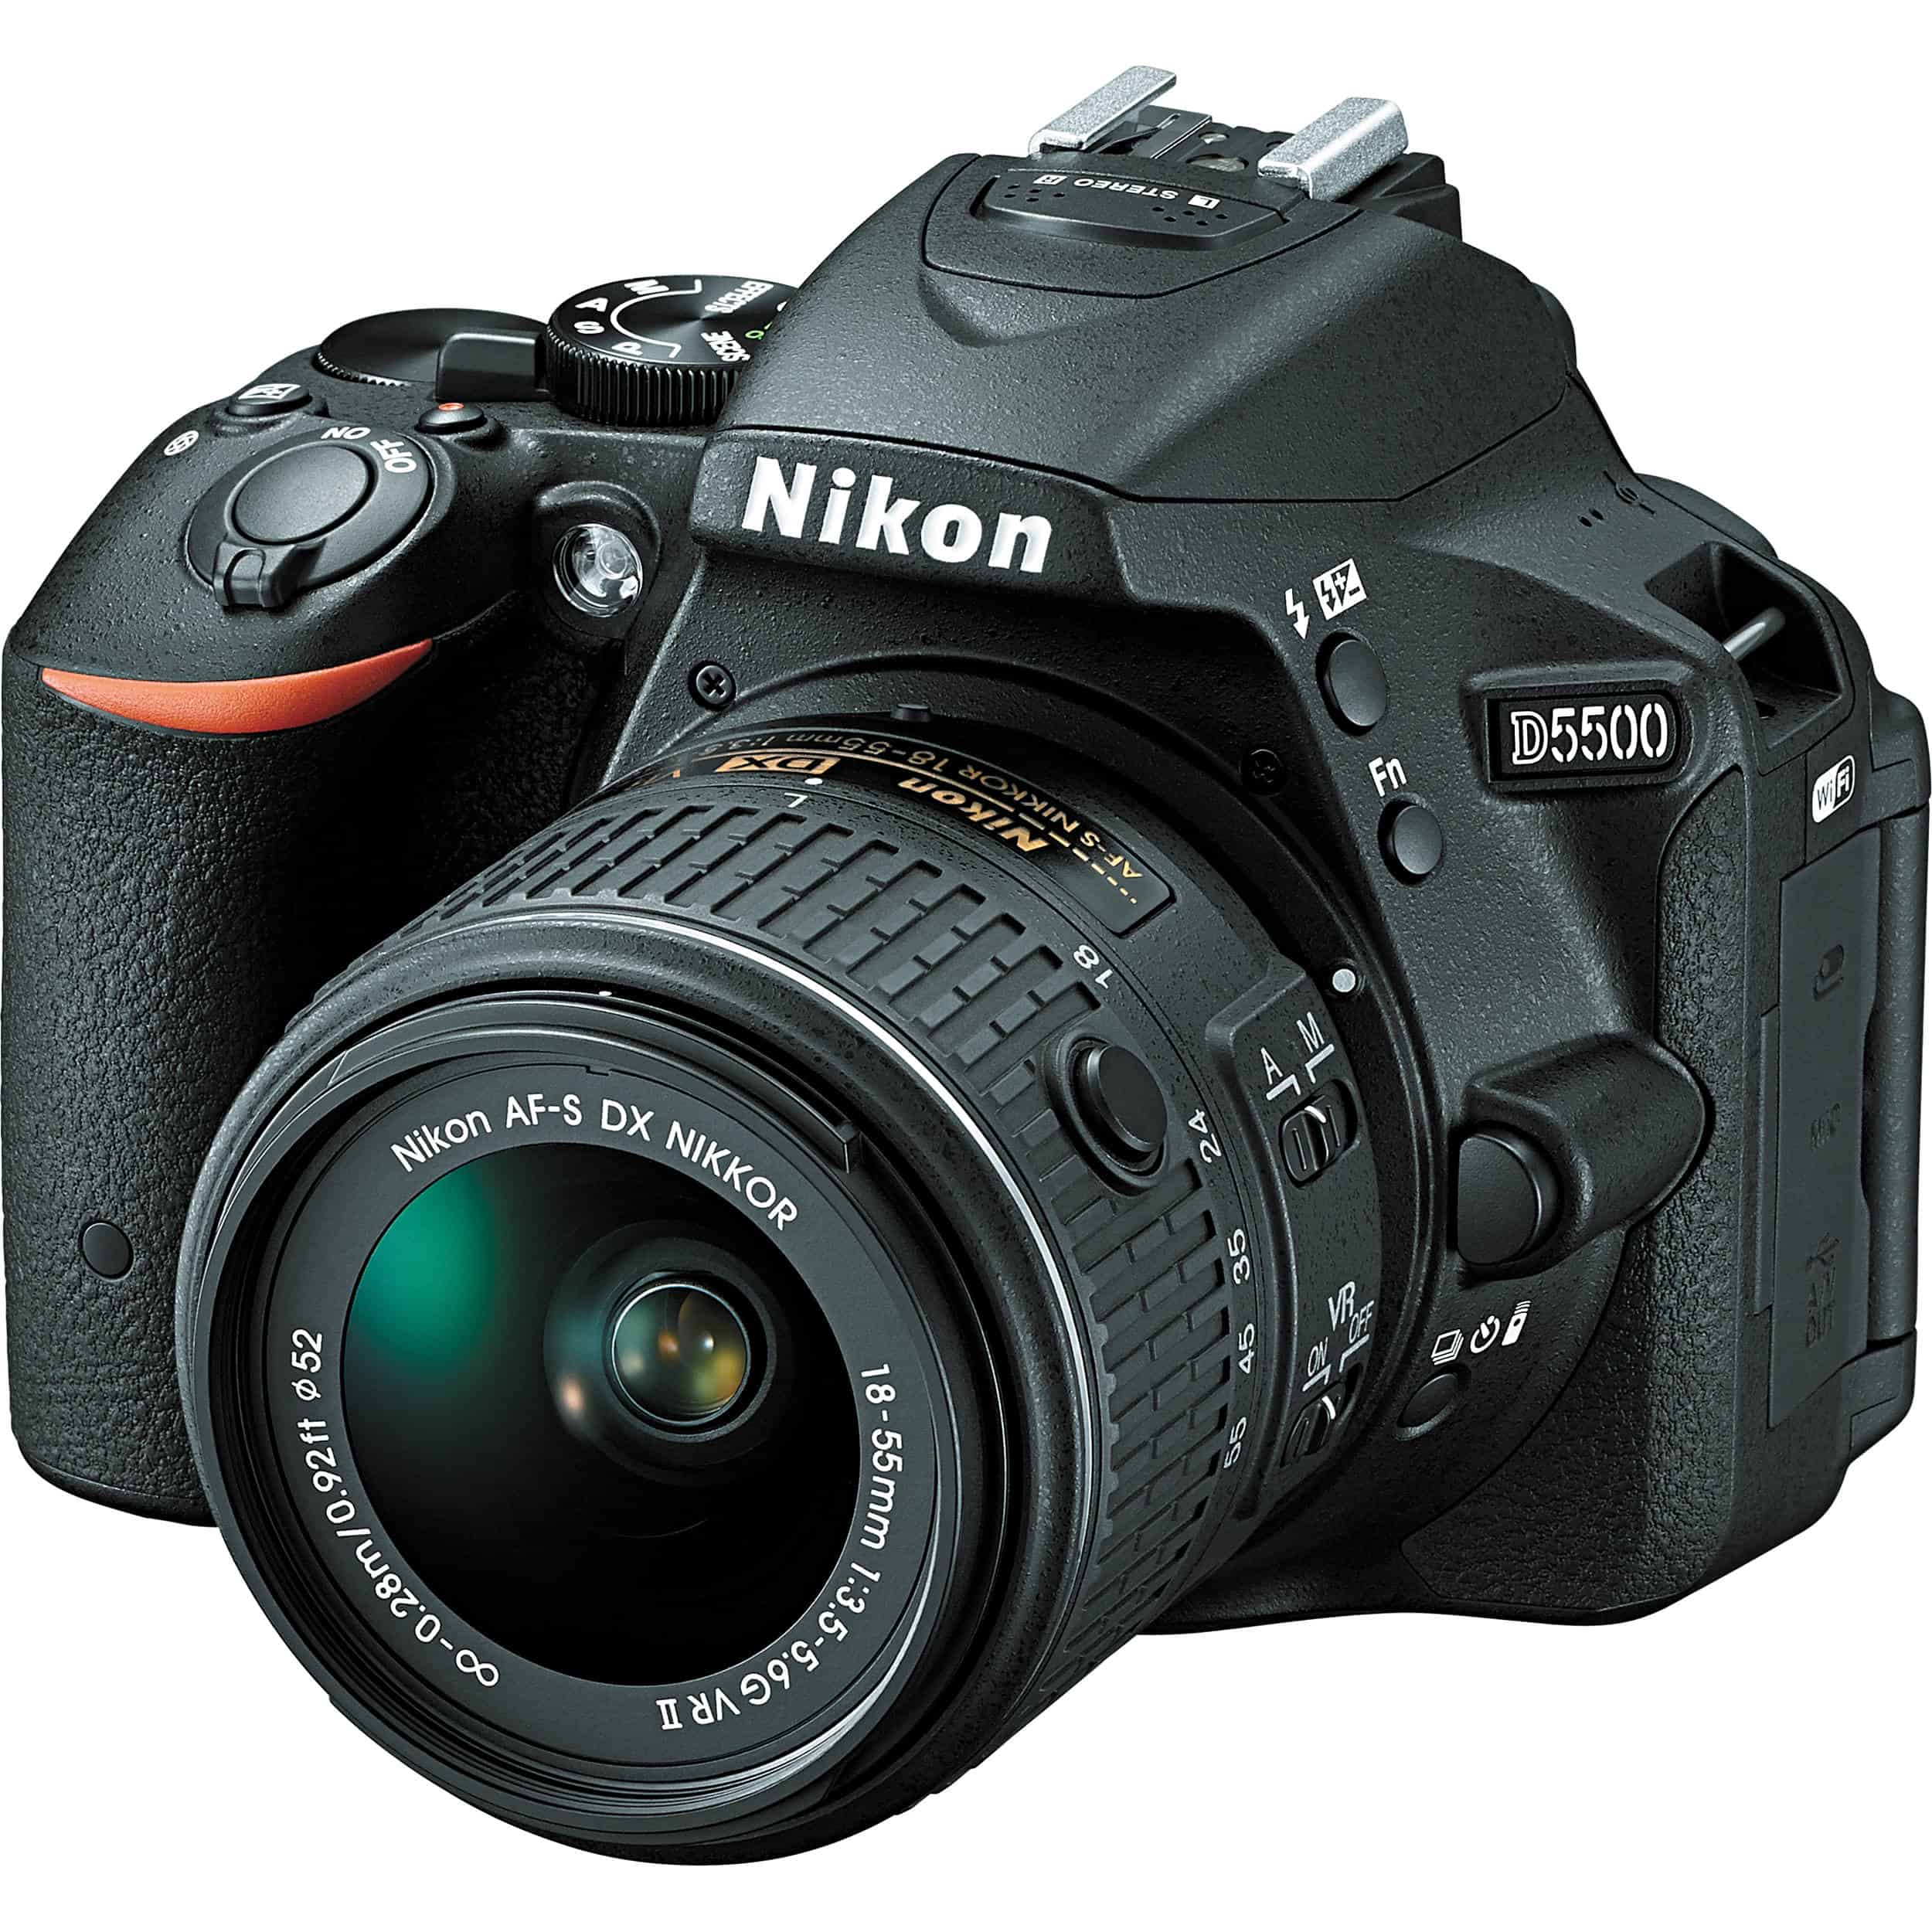 The camera has the company logo facing the camera and the shutter open and without its protective lens on